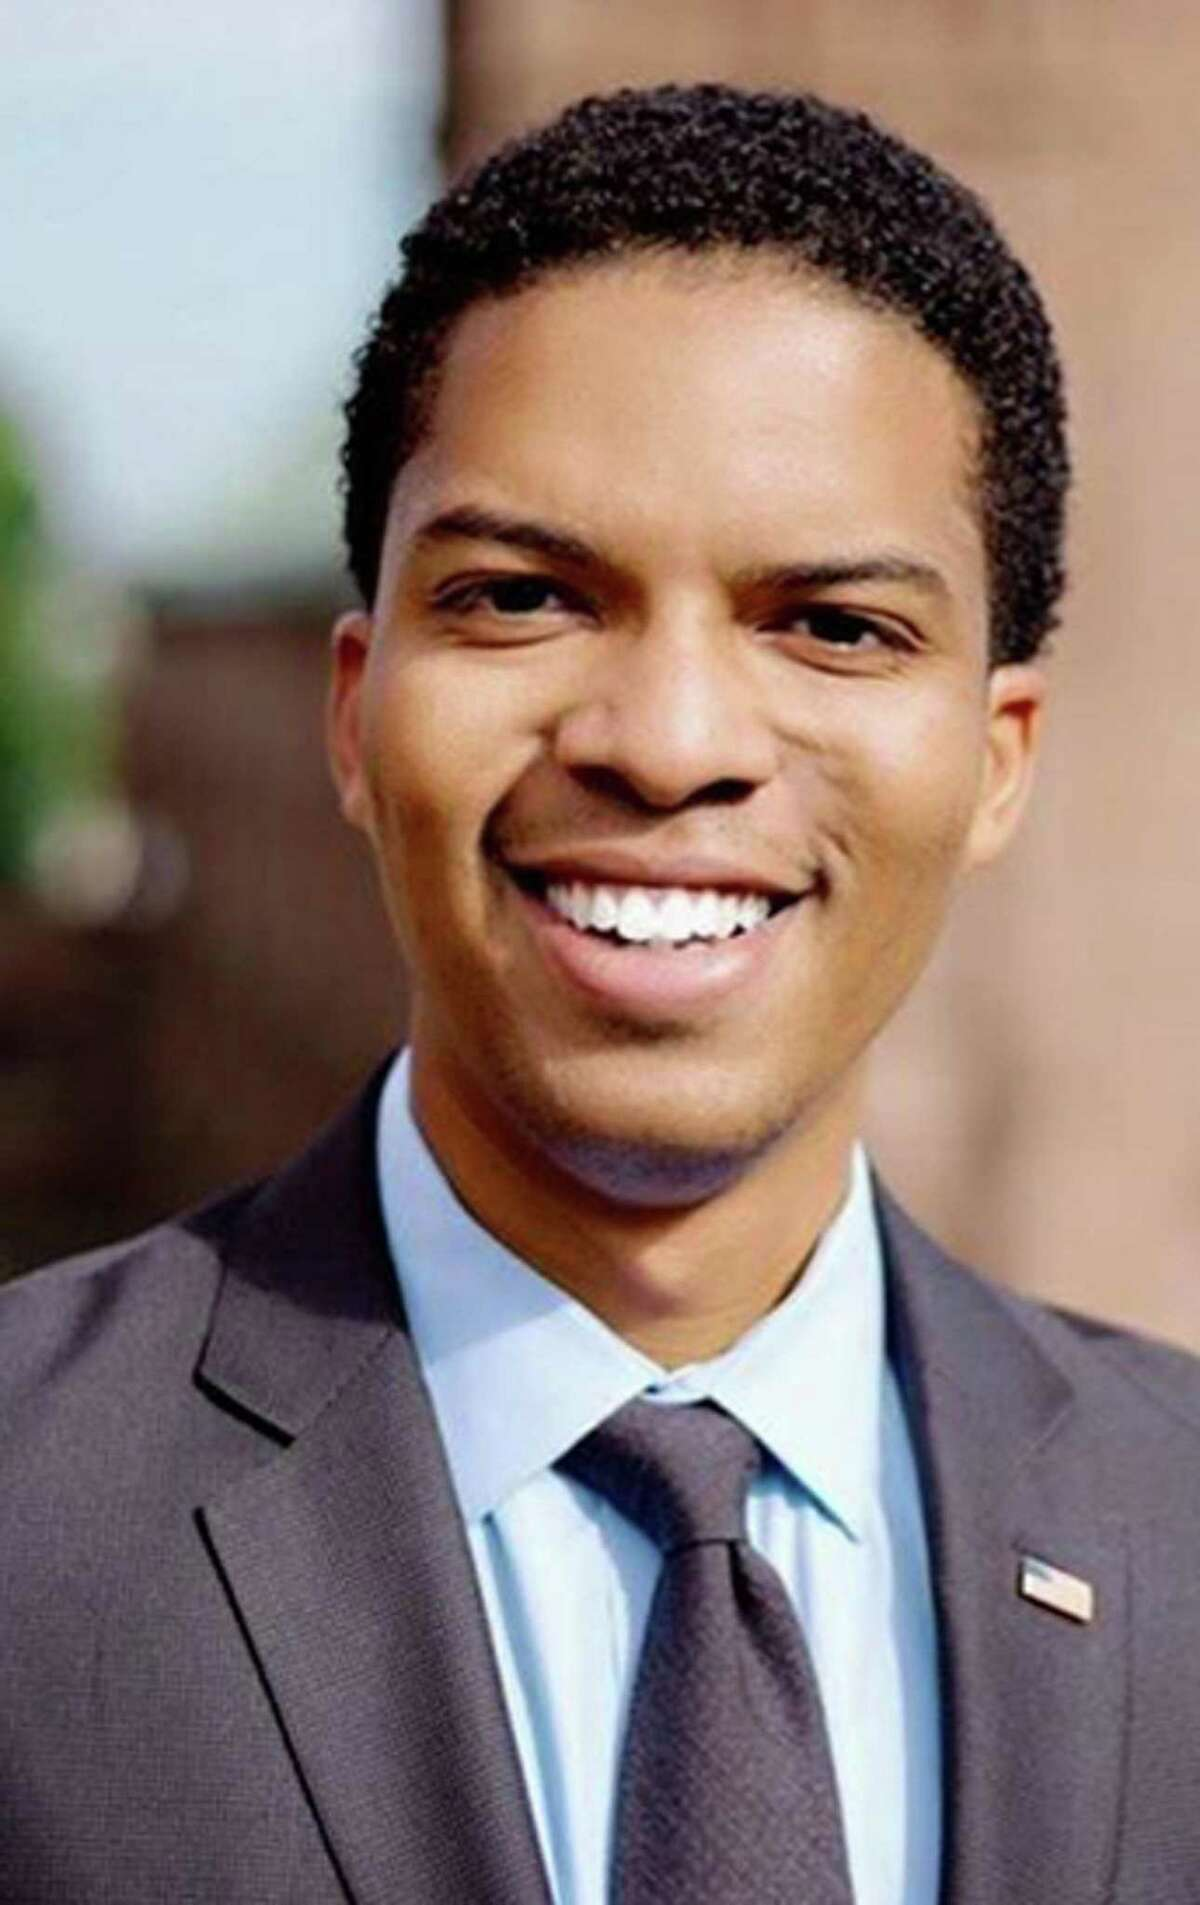 Corey Paris is the Democratic candidate for the 145th state House District special election on April 27.